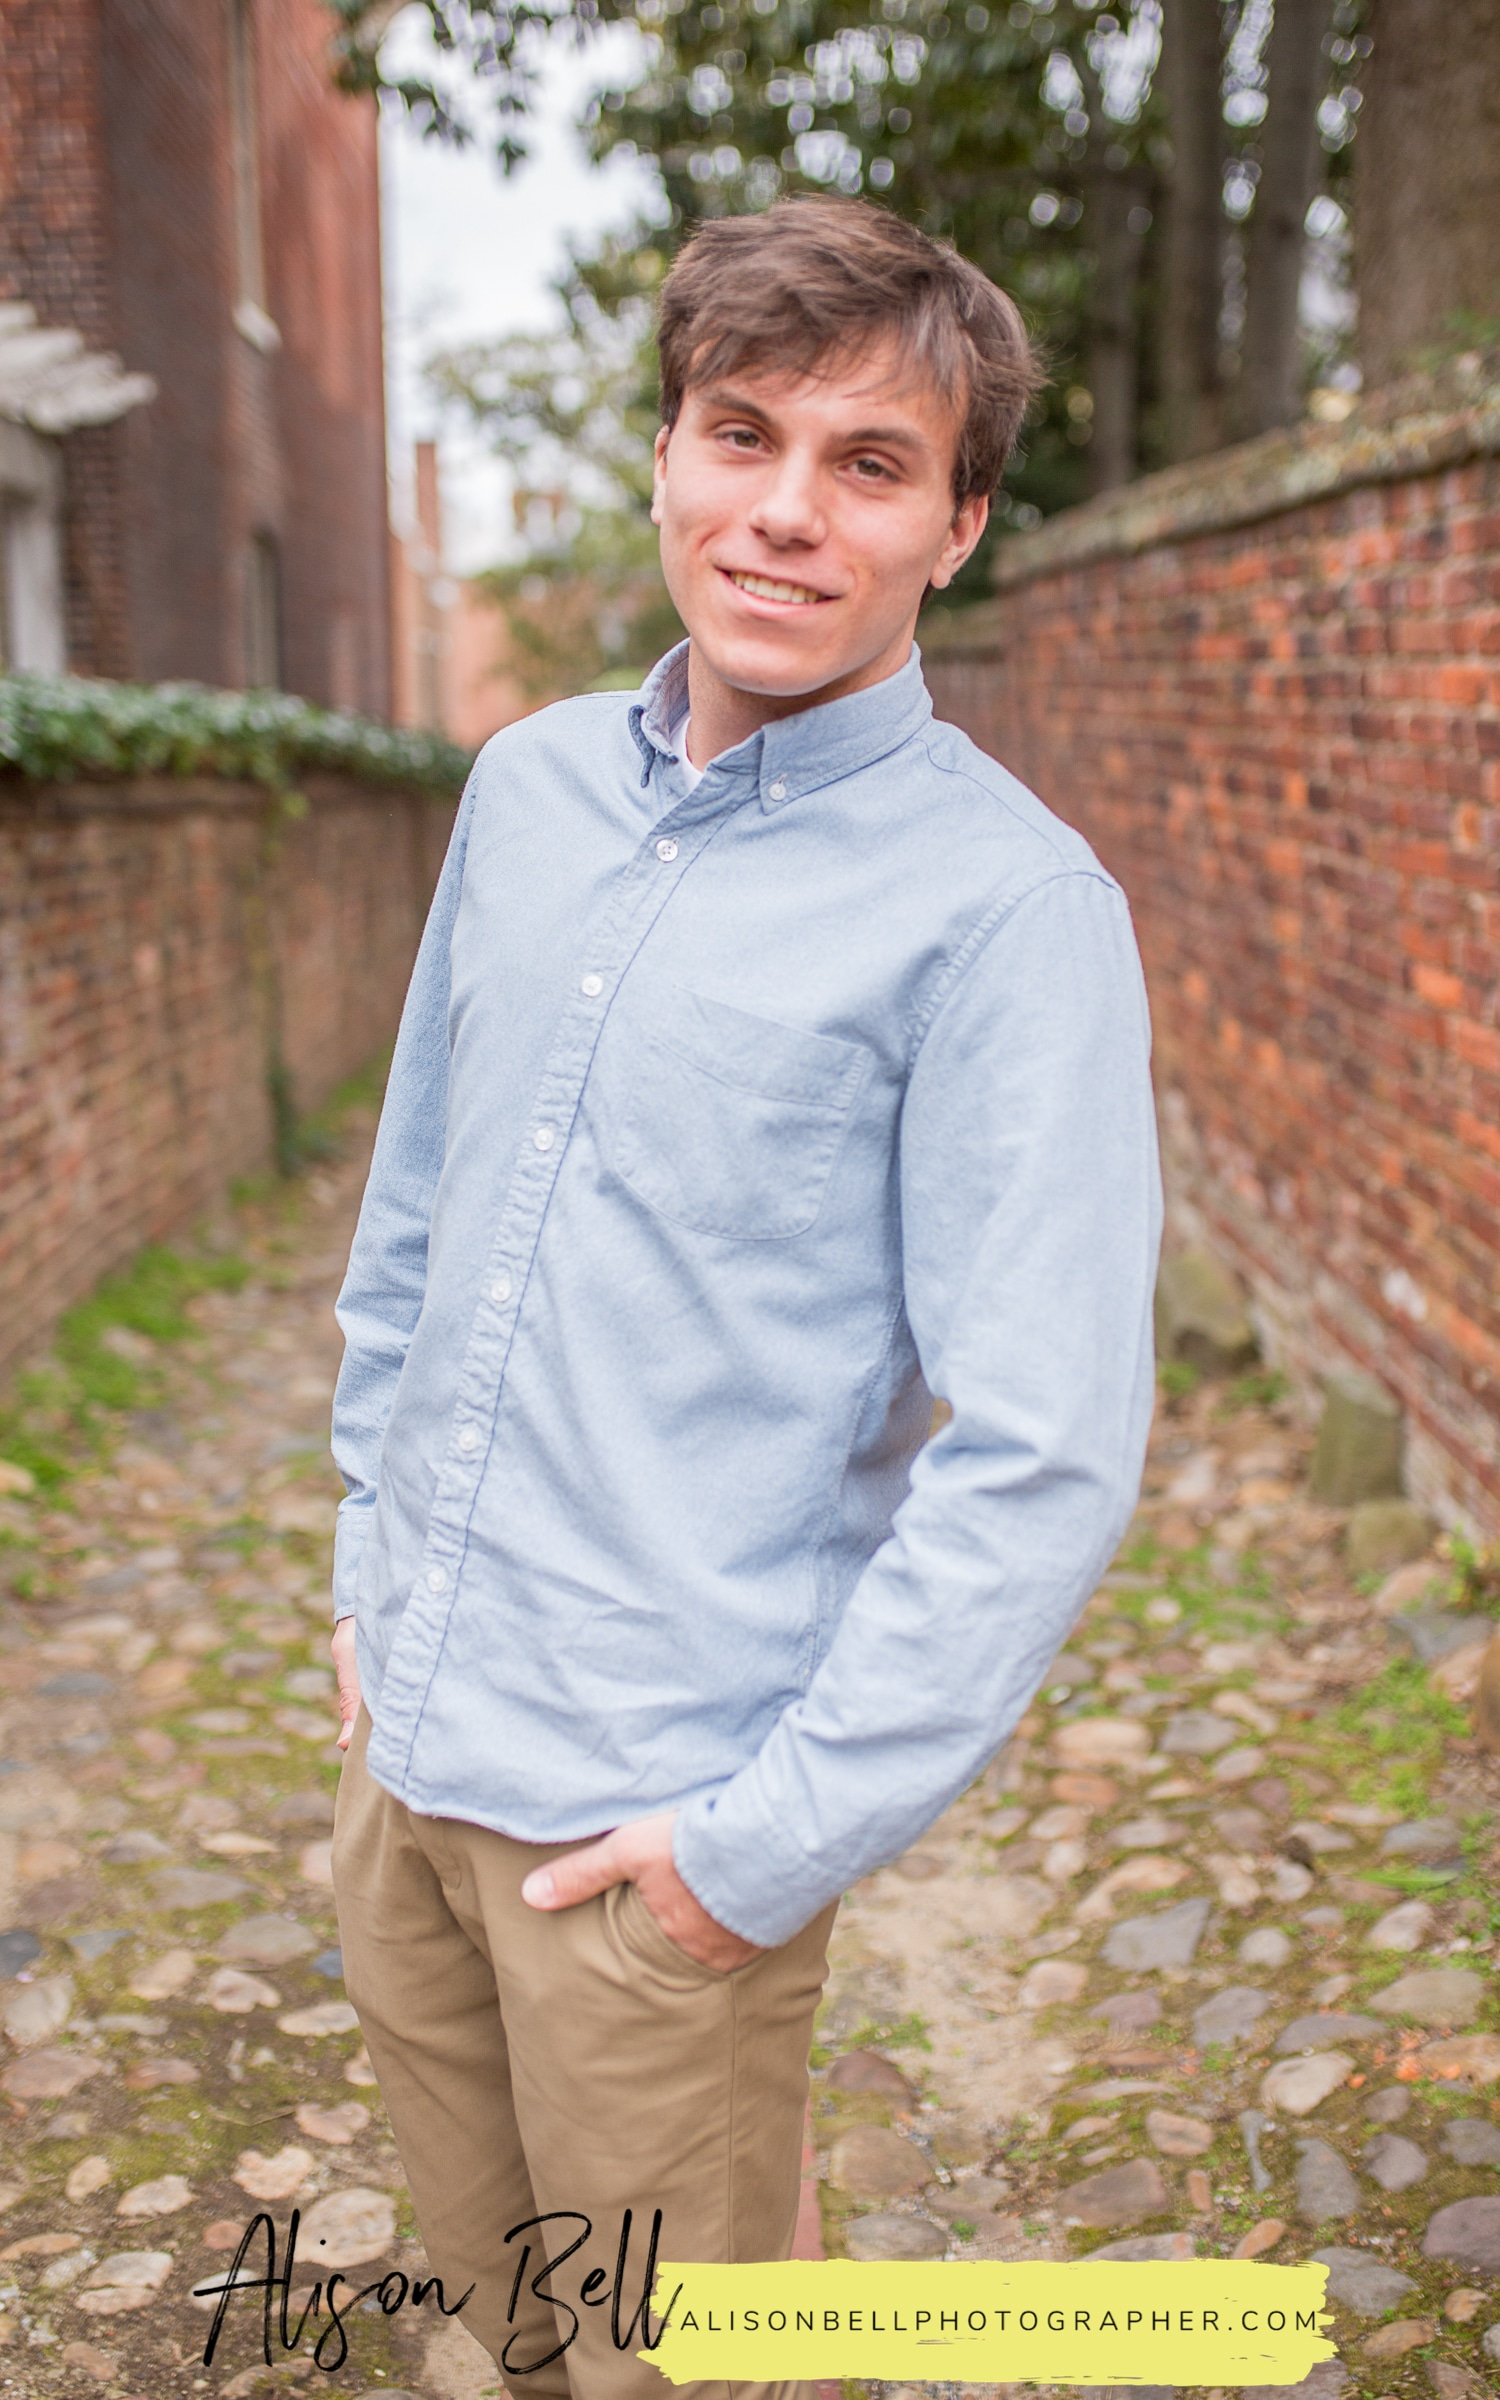 Senior boy photo session in Old Town Alexandria, VA by Alison Bell, Photographer. Alisonbellphotographer.com